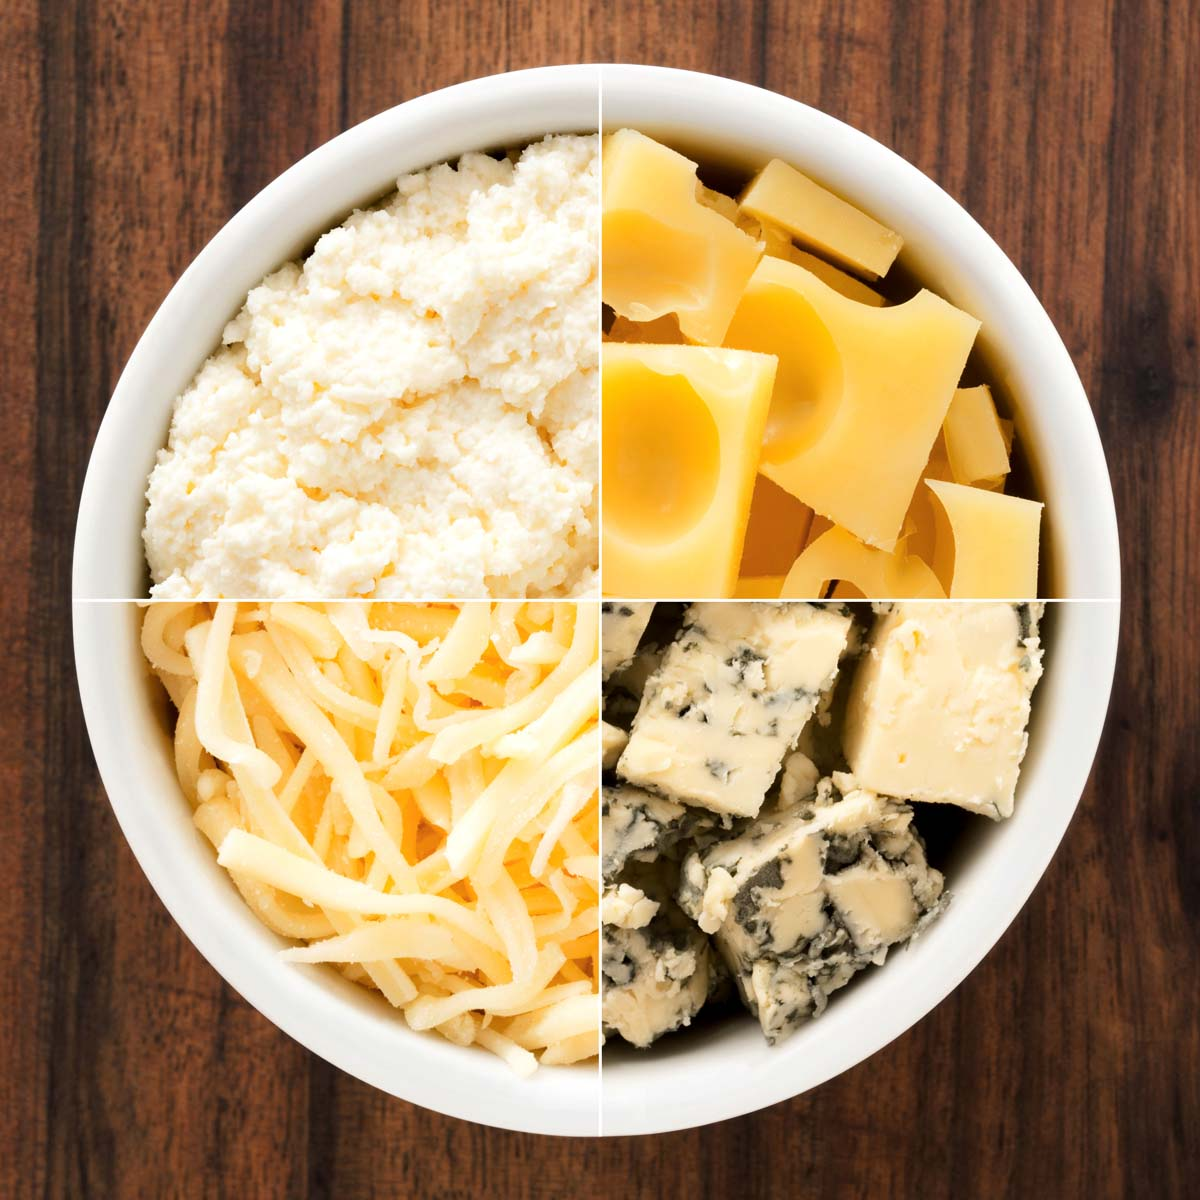 Making Cheese at Home: 5-Minute Cheese Spread